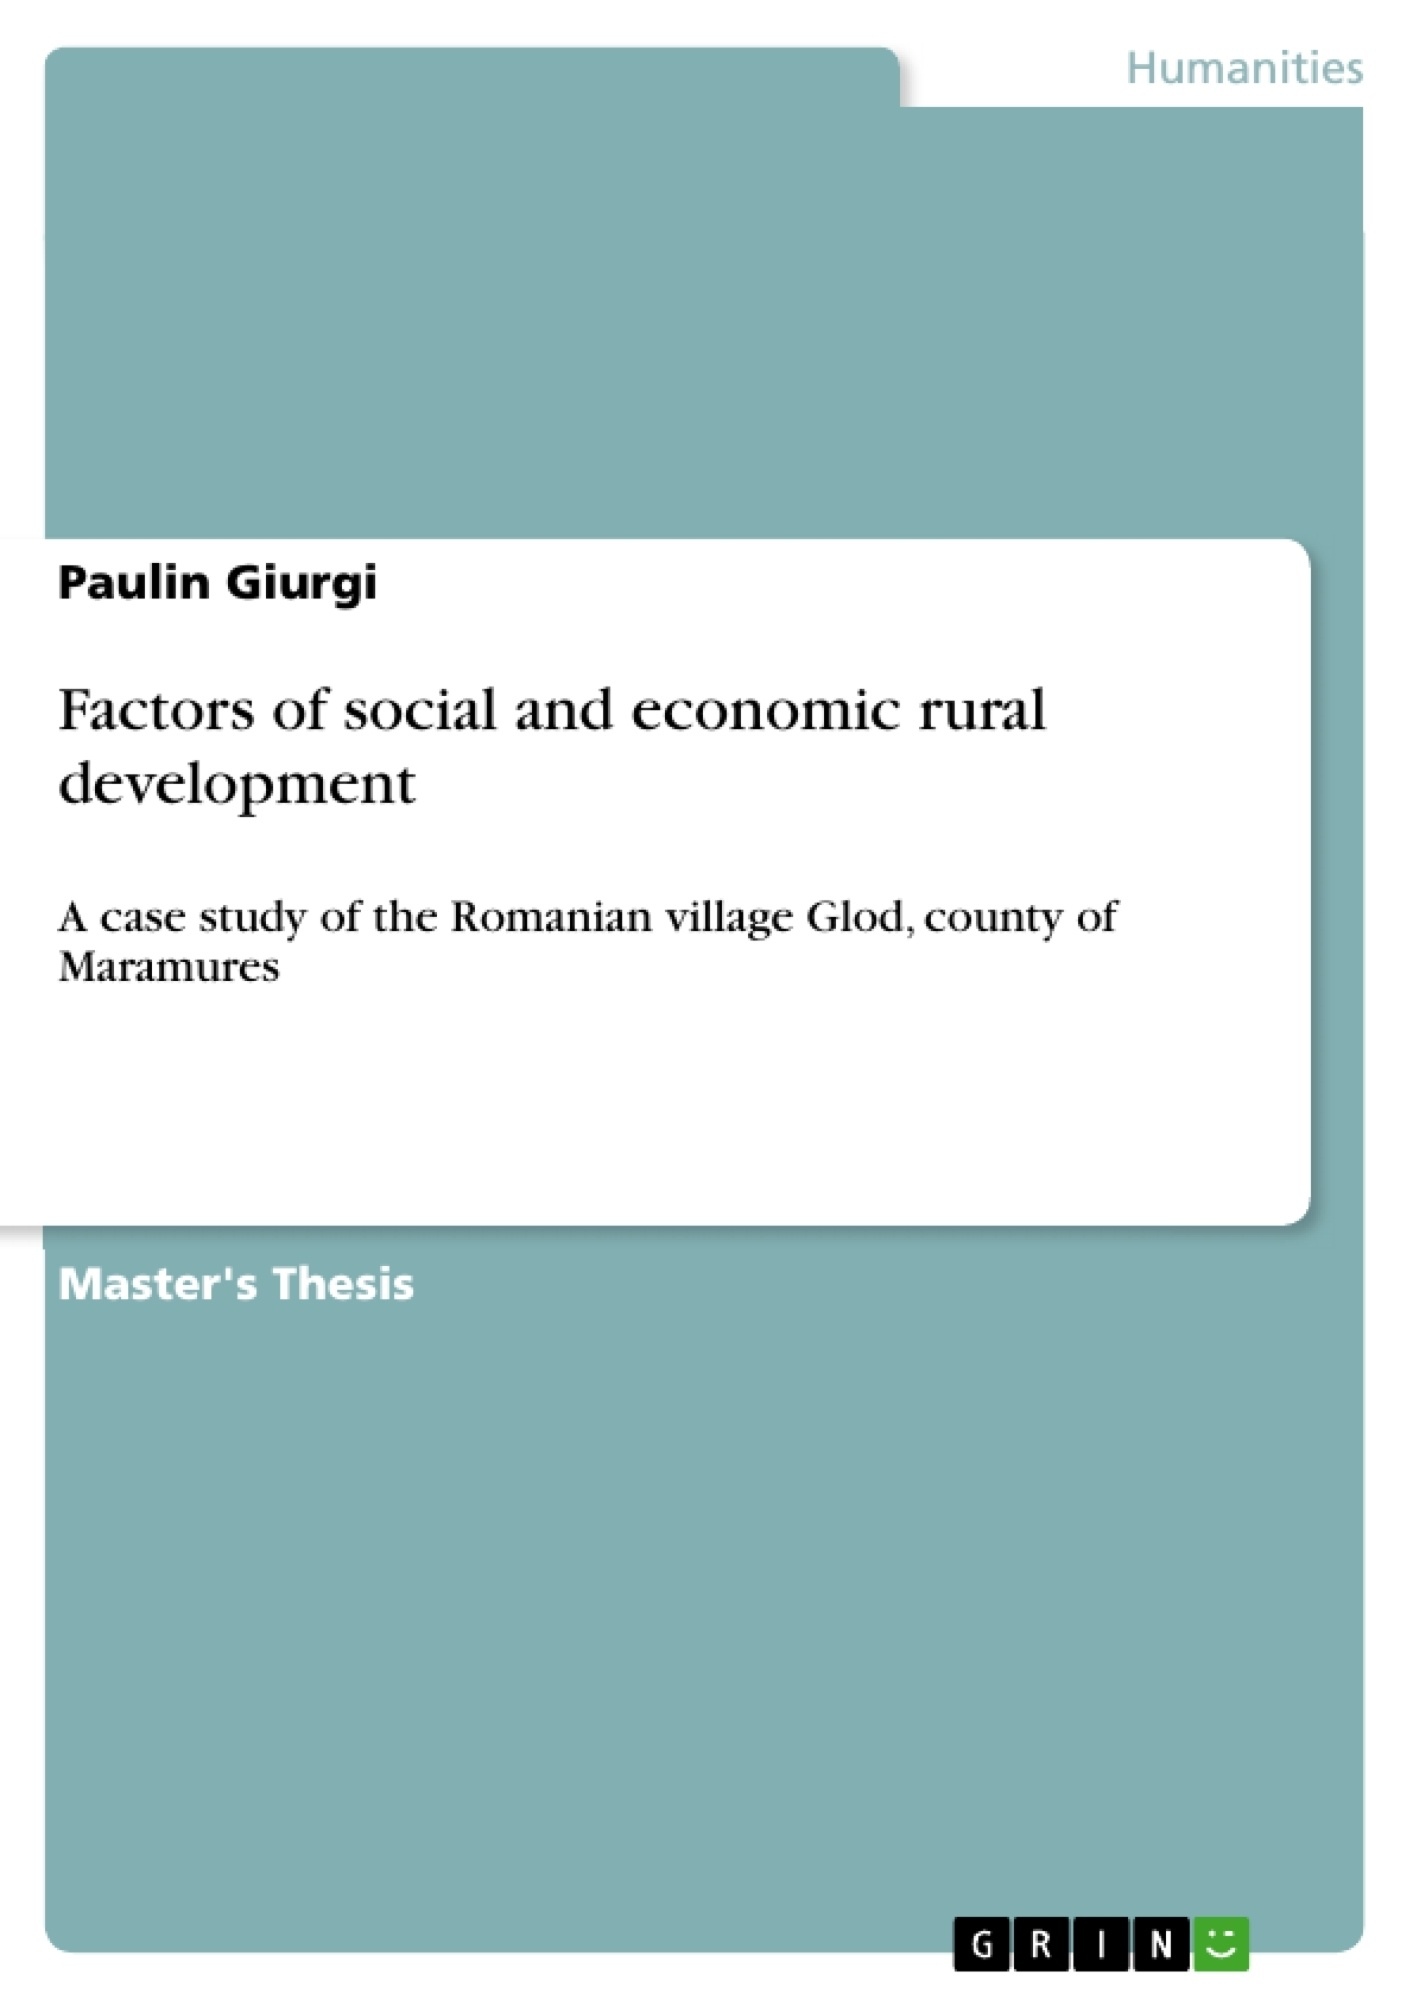 Master thesis on rural development